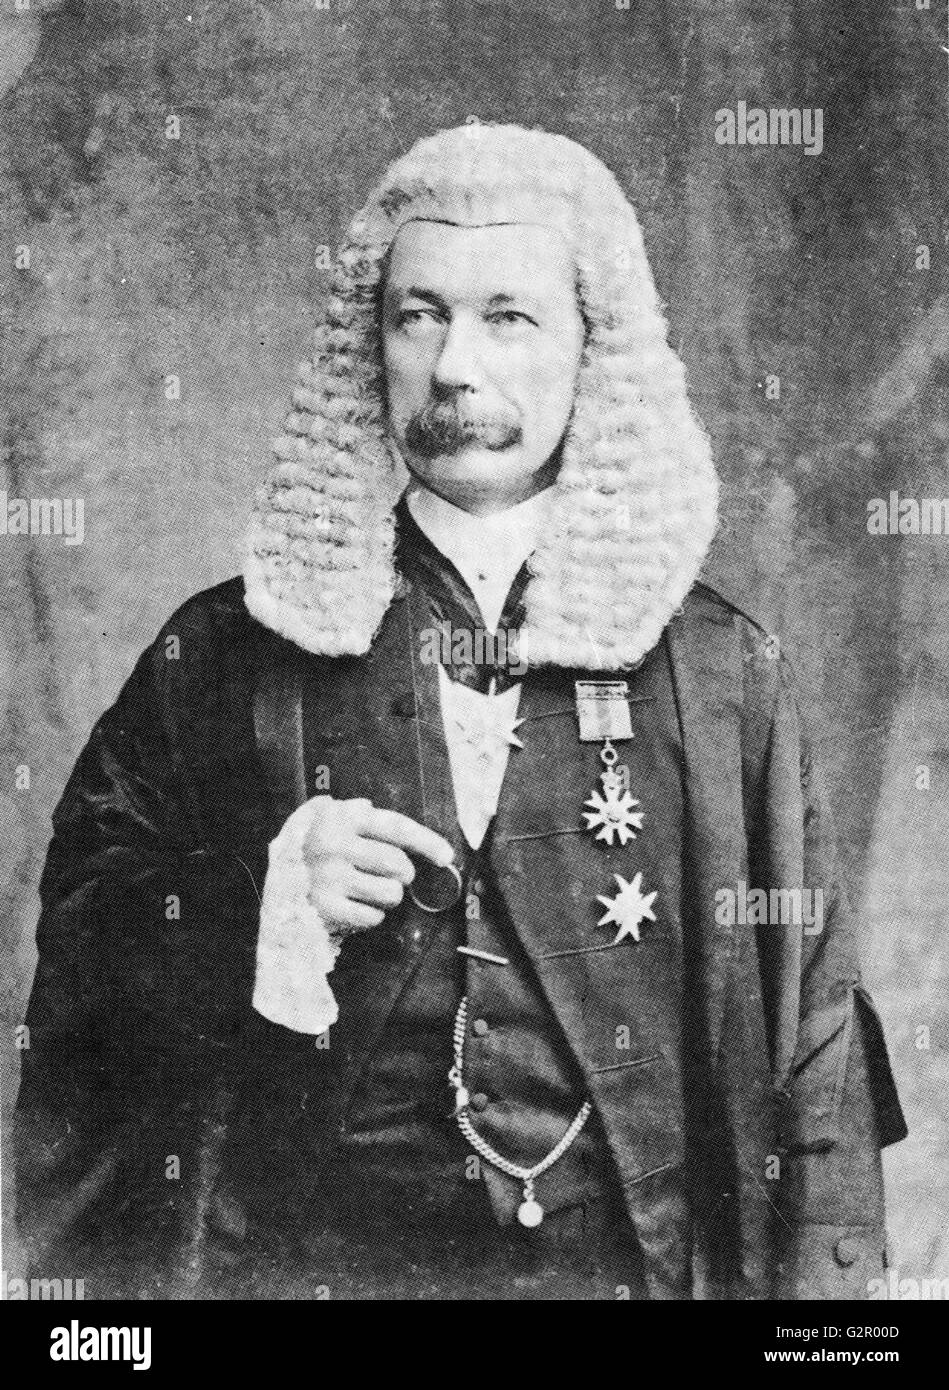 JOHN CARRINGTON  (1847-1913) British jurist and colonial administrator about 1897 while Chief Justice of Hong Kong - Stock Image